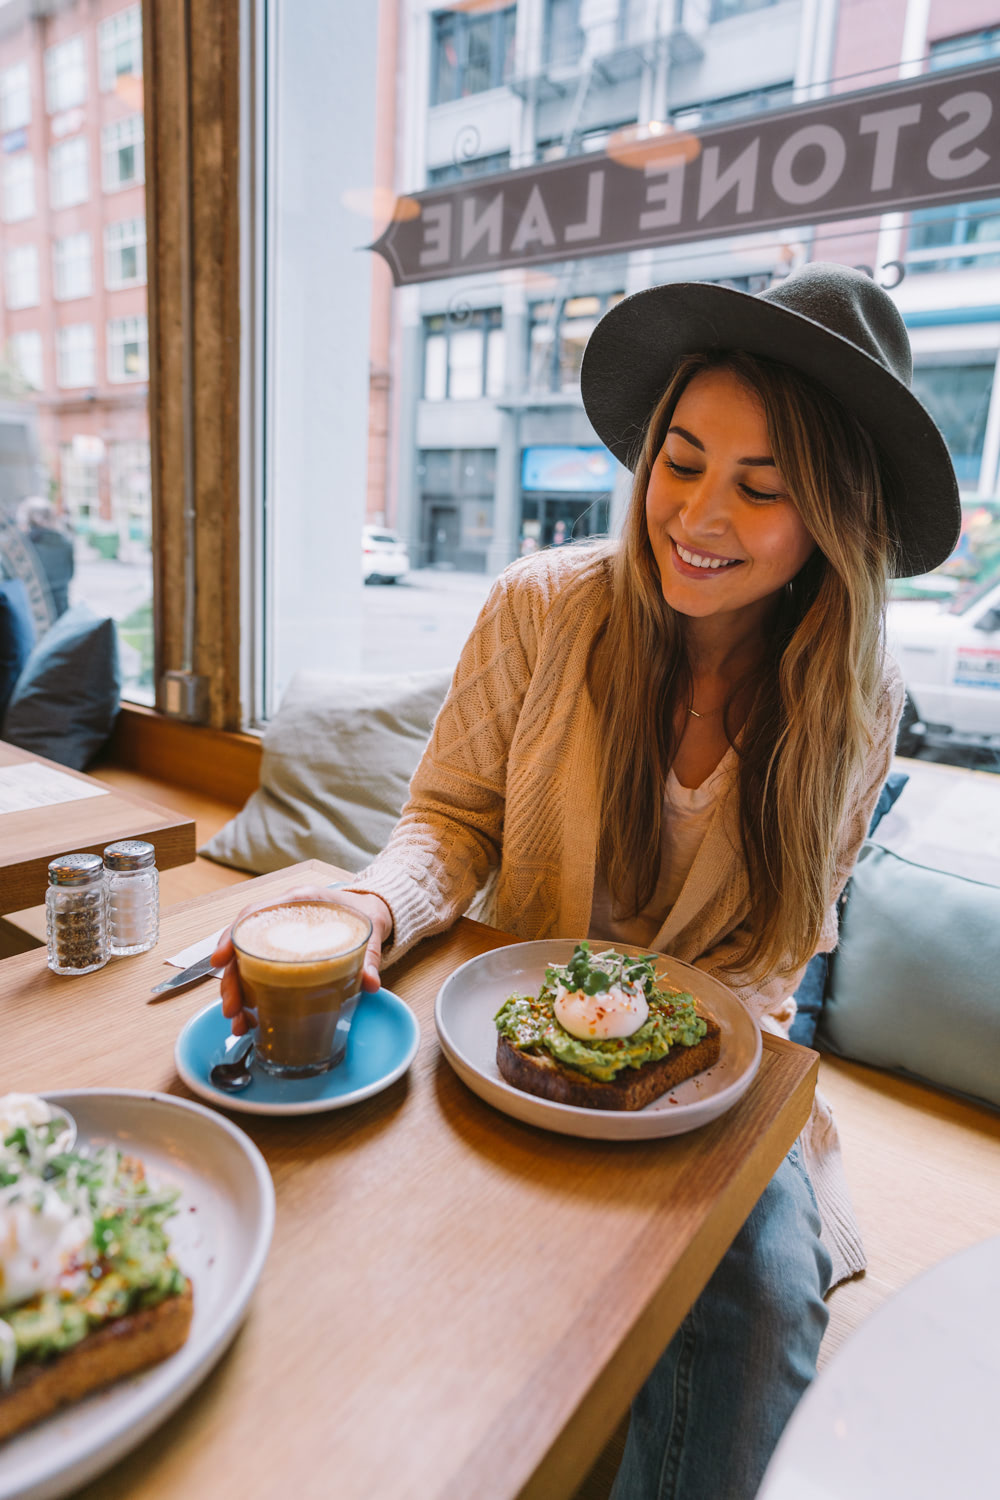 How-to-Spend-24-Hours-in-San-Francisco-Blue-Stone-Lane-Brunch-02-Renee-Roaming